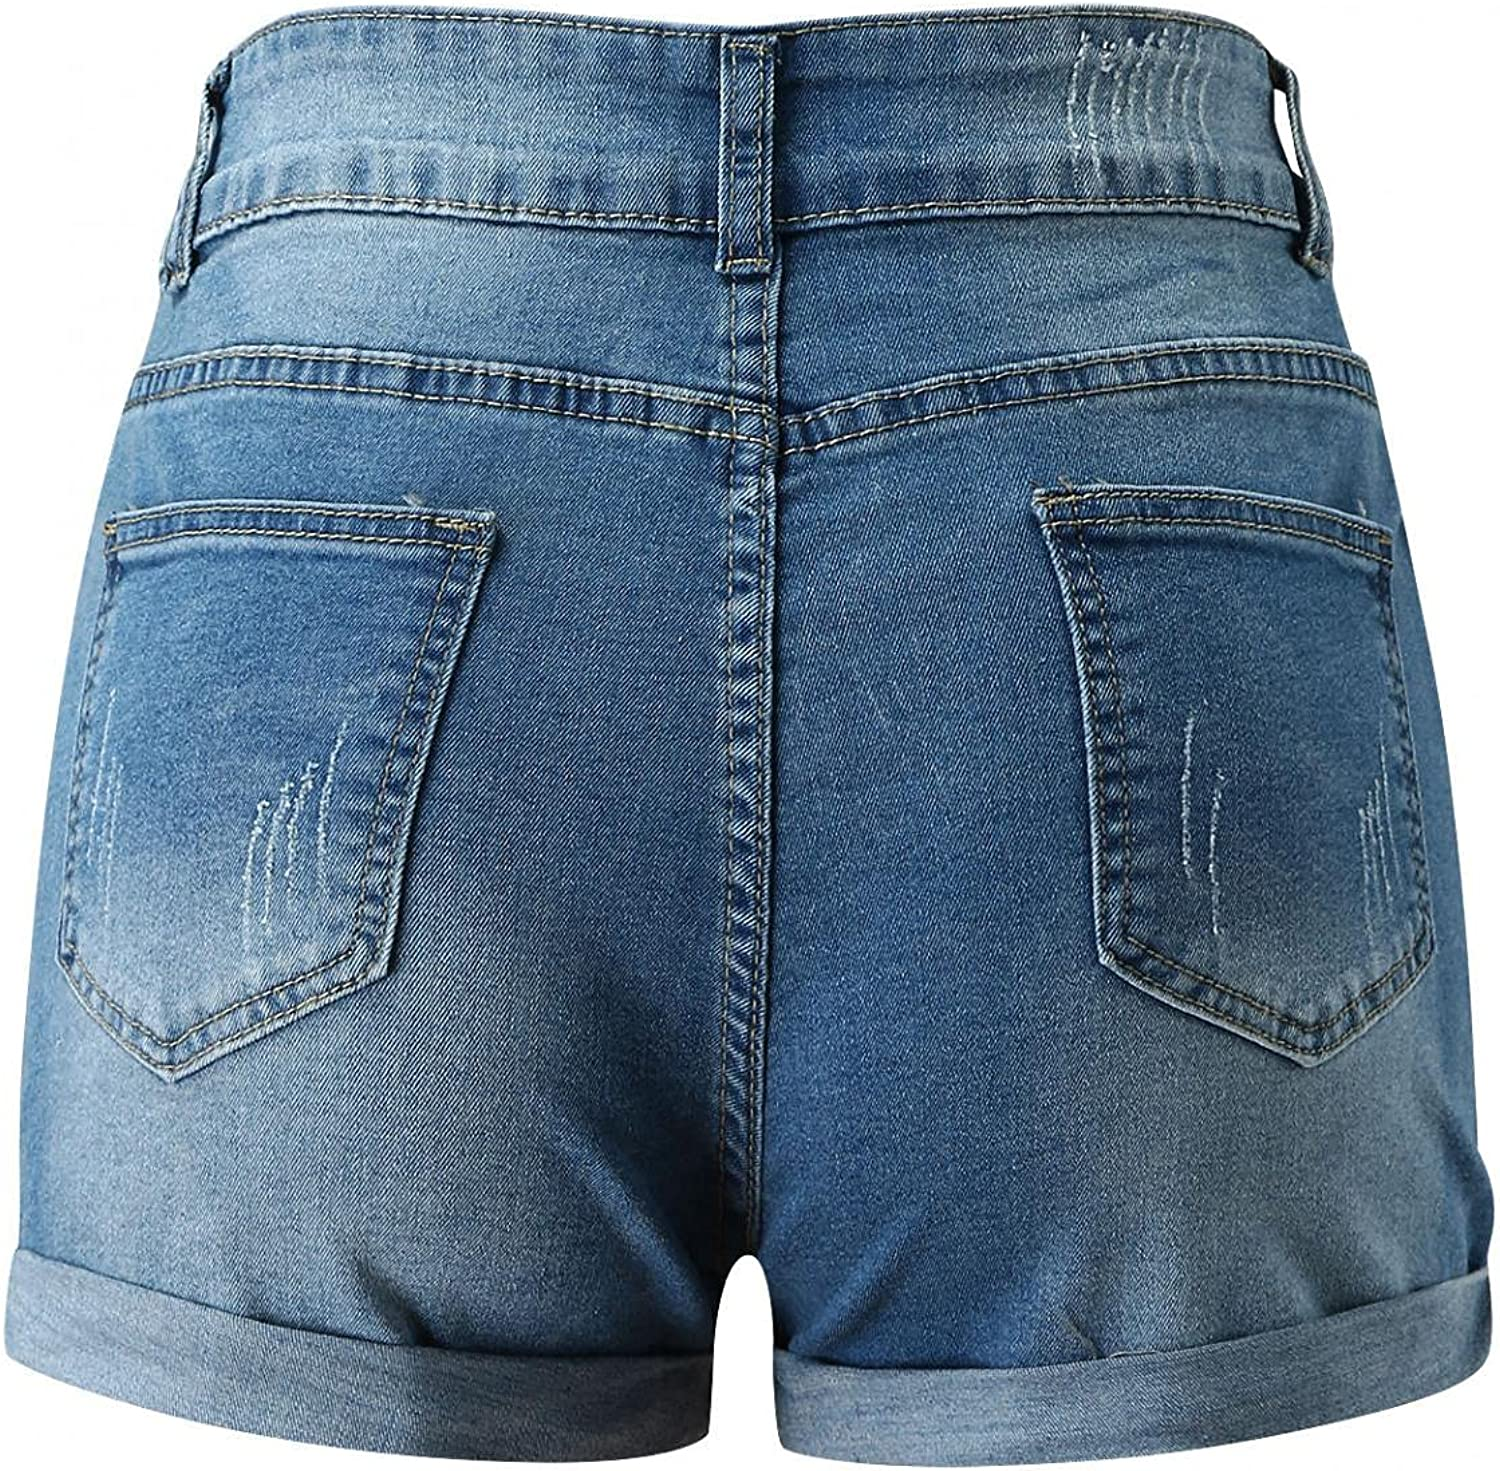 XINXX Womens Ripped Hole Short Jeans Mid-Rise Stretchy Frayed Raw Hem Distressed Skinny Denim Jeans Shorts